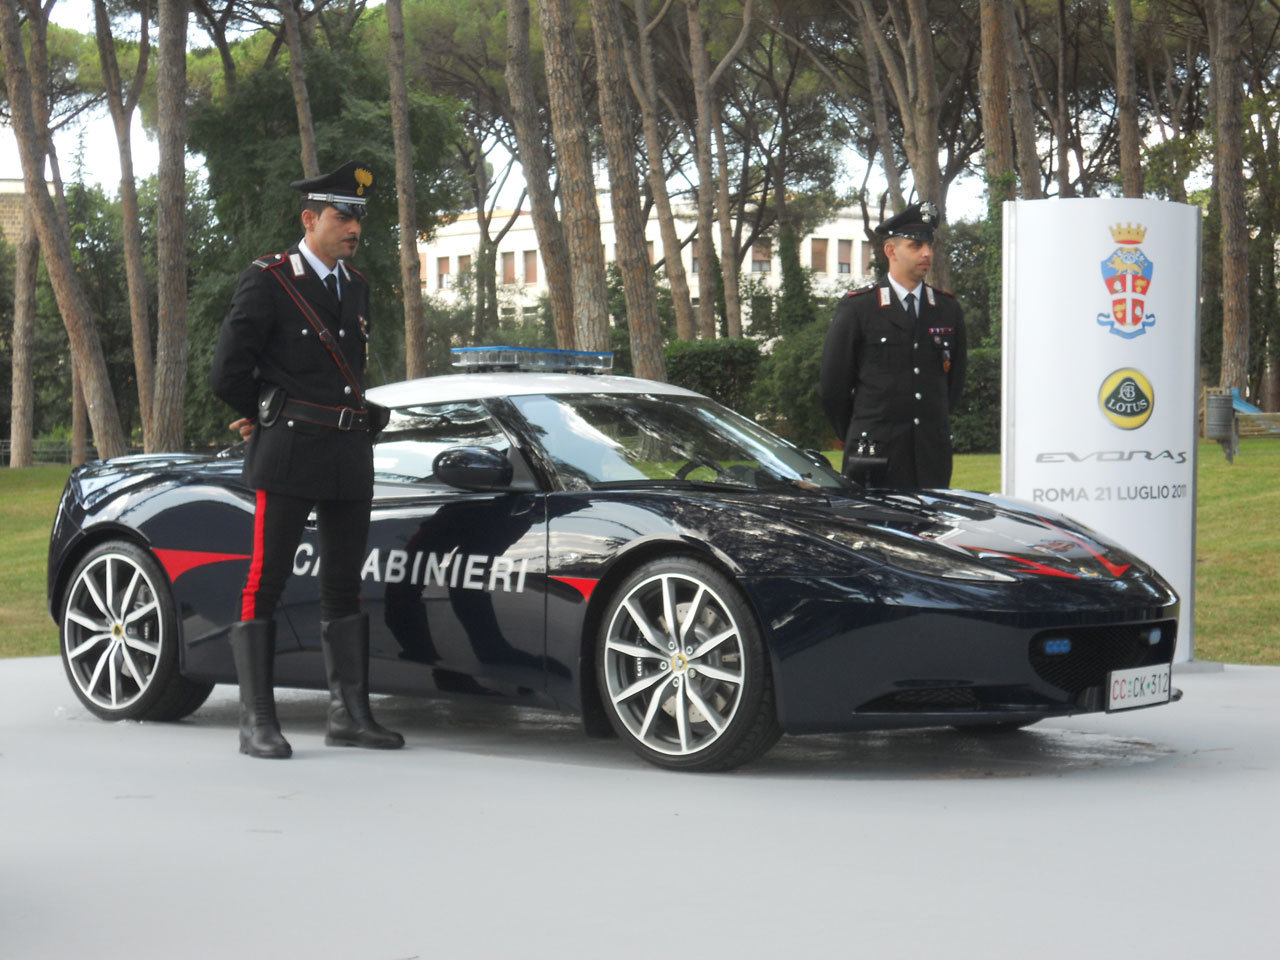 Photo of Lotus Evora Carabinieri Roma